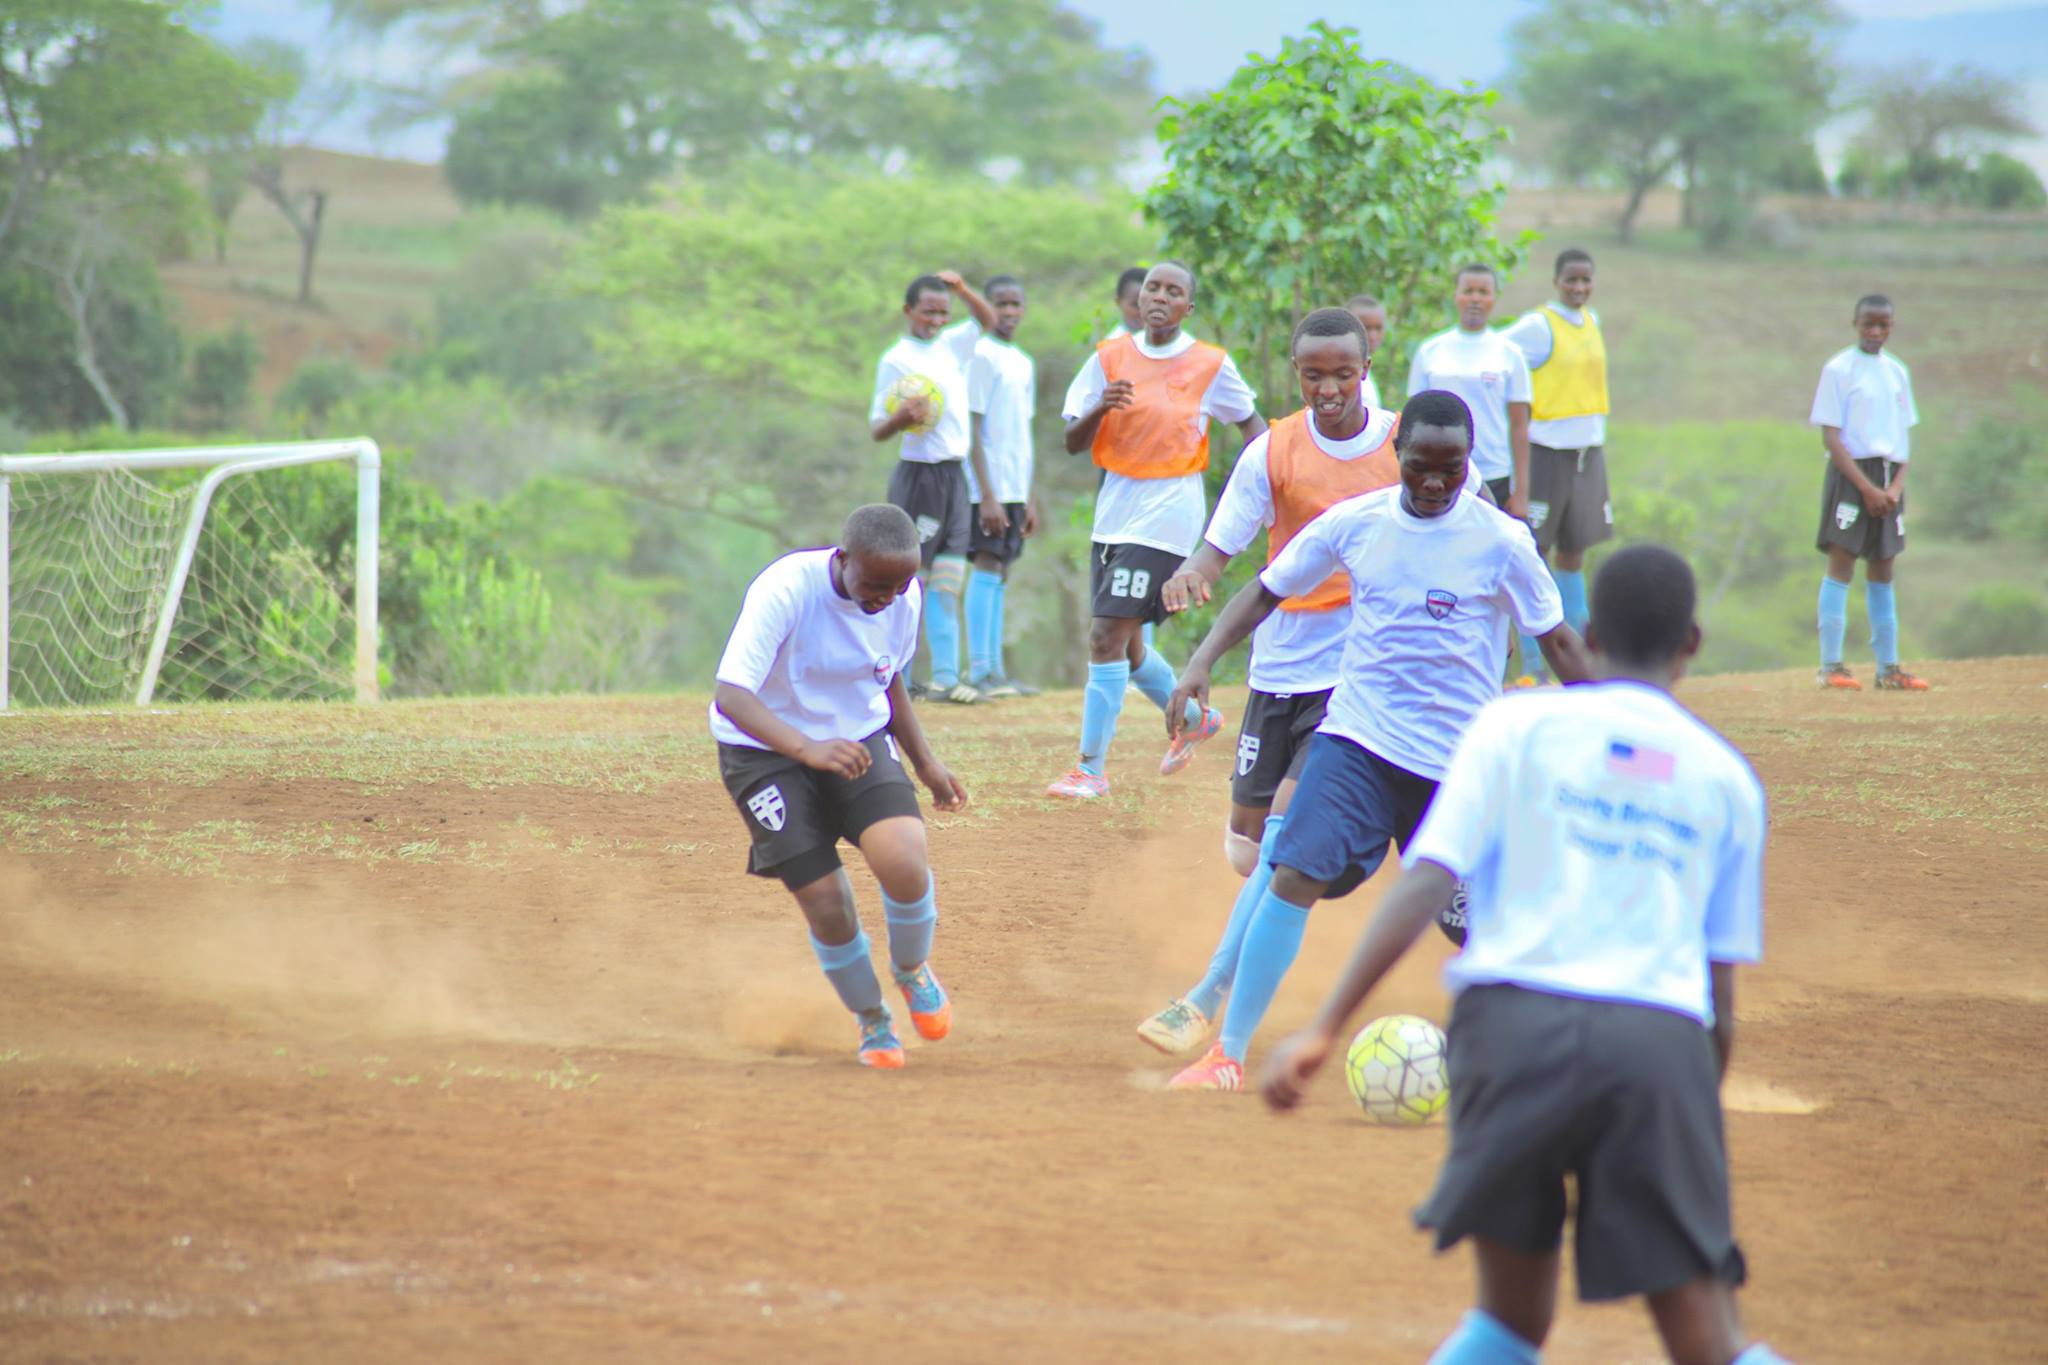 Tanzanian youth participate in soccer drills lead by Sports Envoys and U.S. Women's National Team member, Alex Morgan, and Orlando City player Servando Carrasco.  2017.